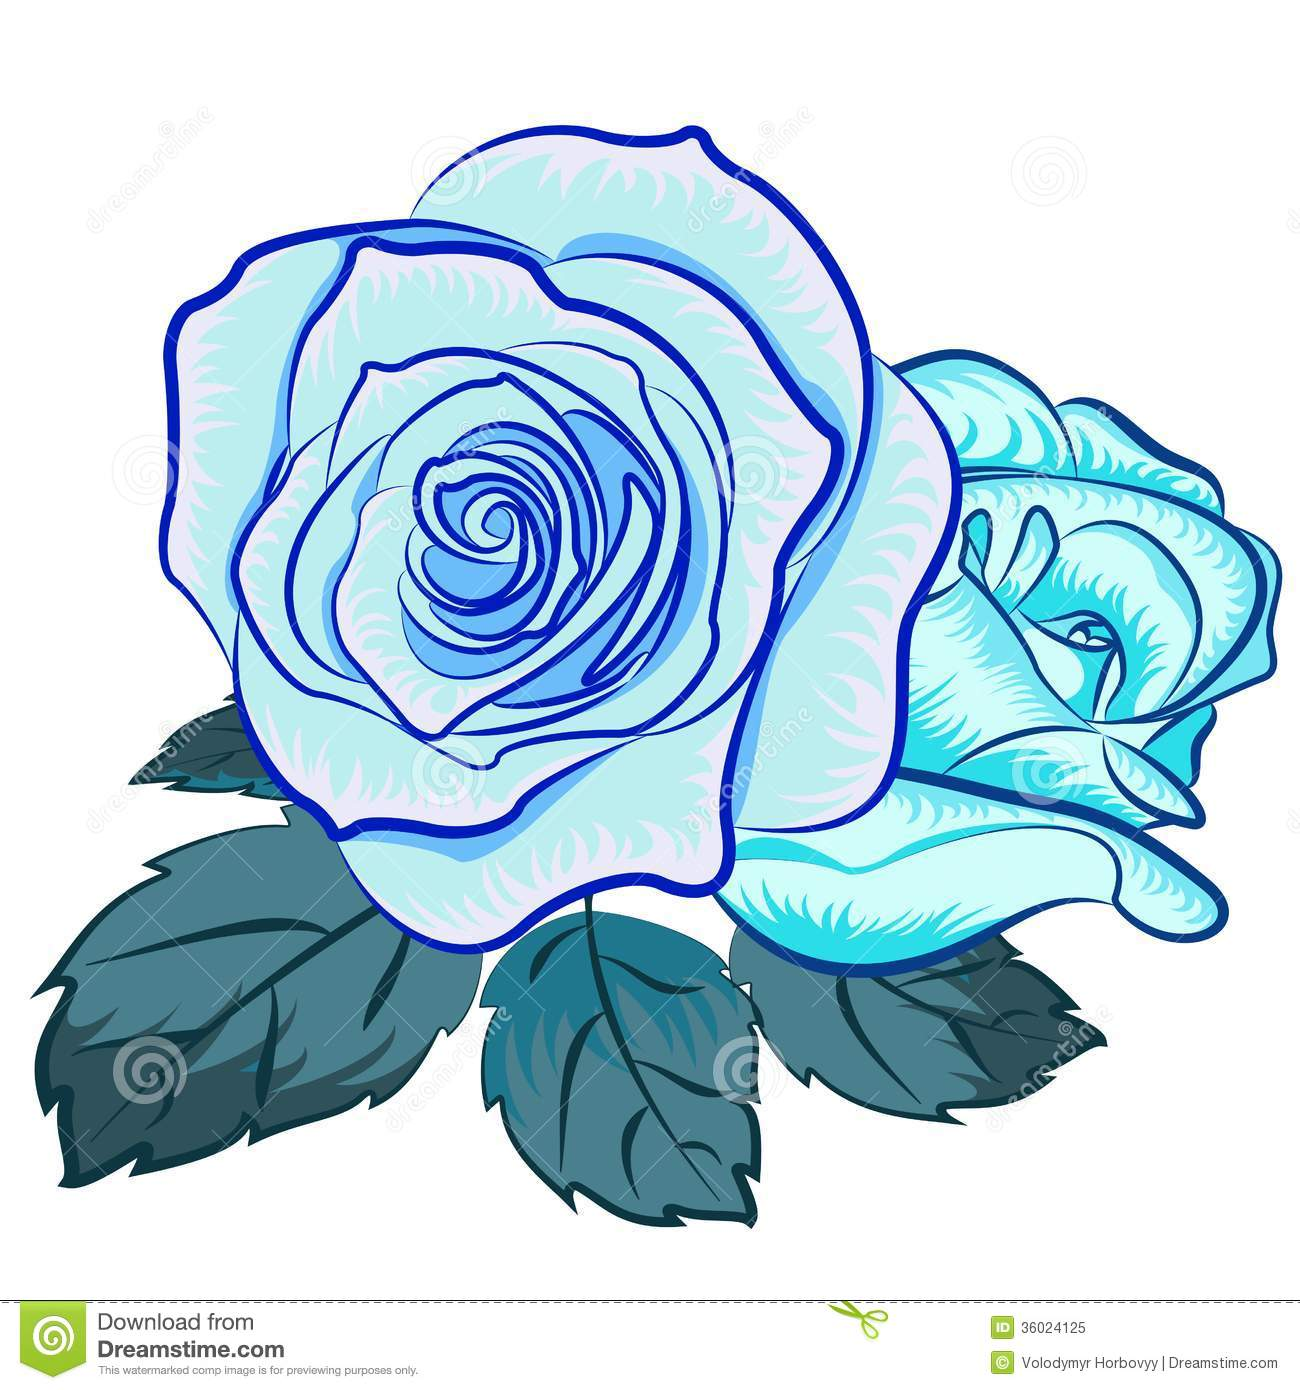 Blue Rose clipart #1, Download drawings